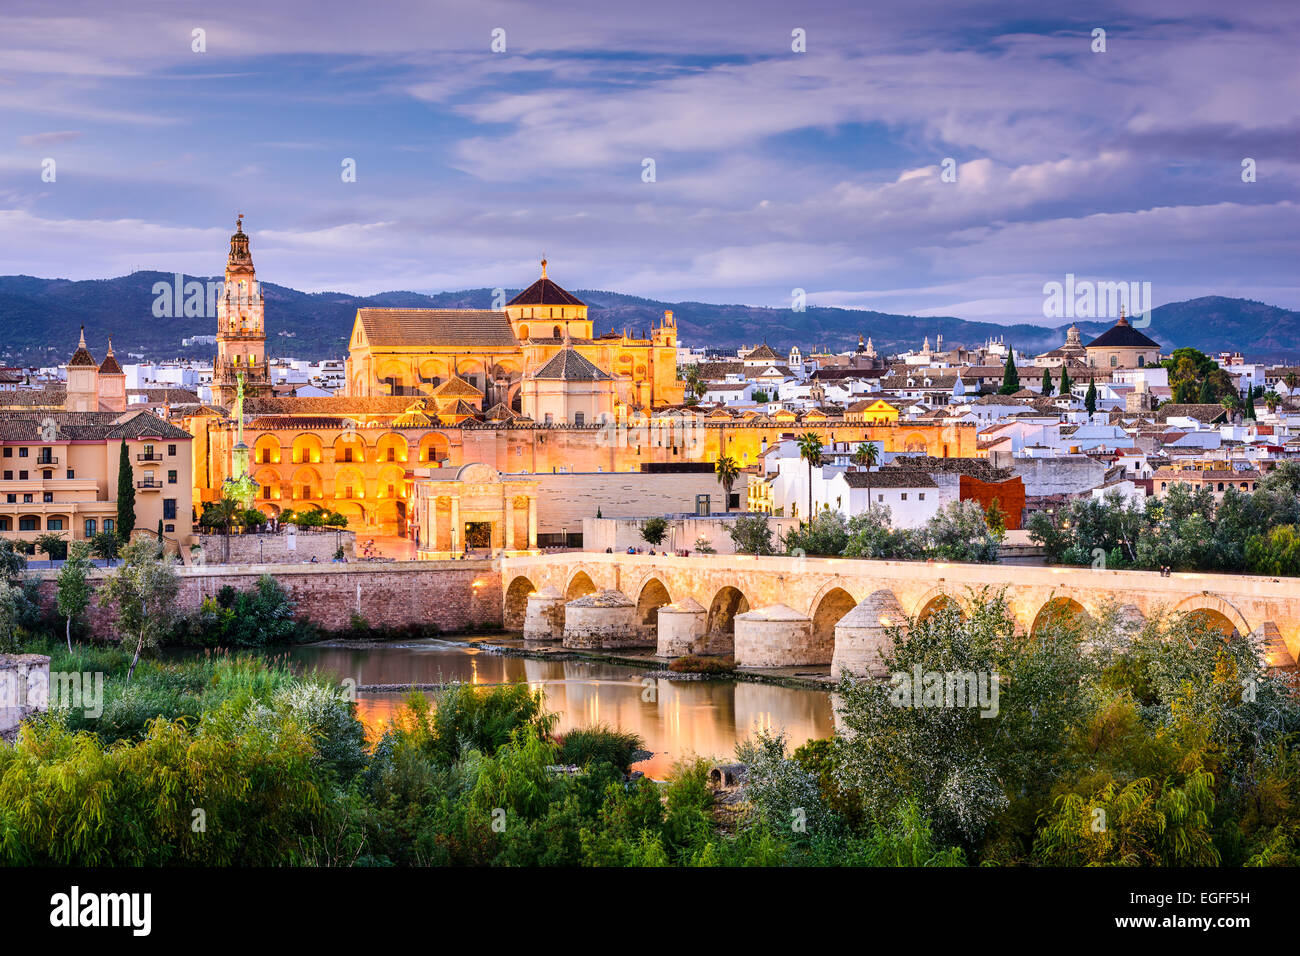 Cordoba, Spain old town skyline at the Mosque-Cathedral. - Stock Image